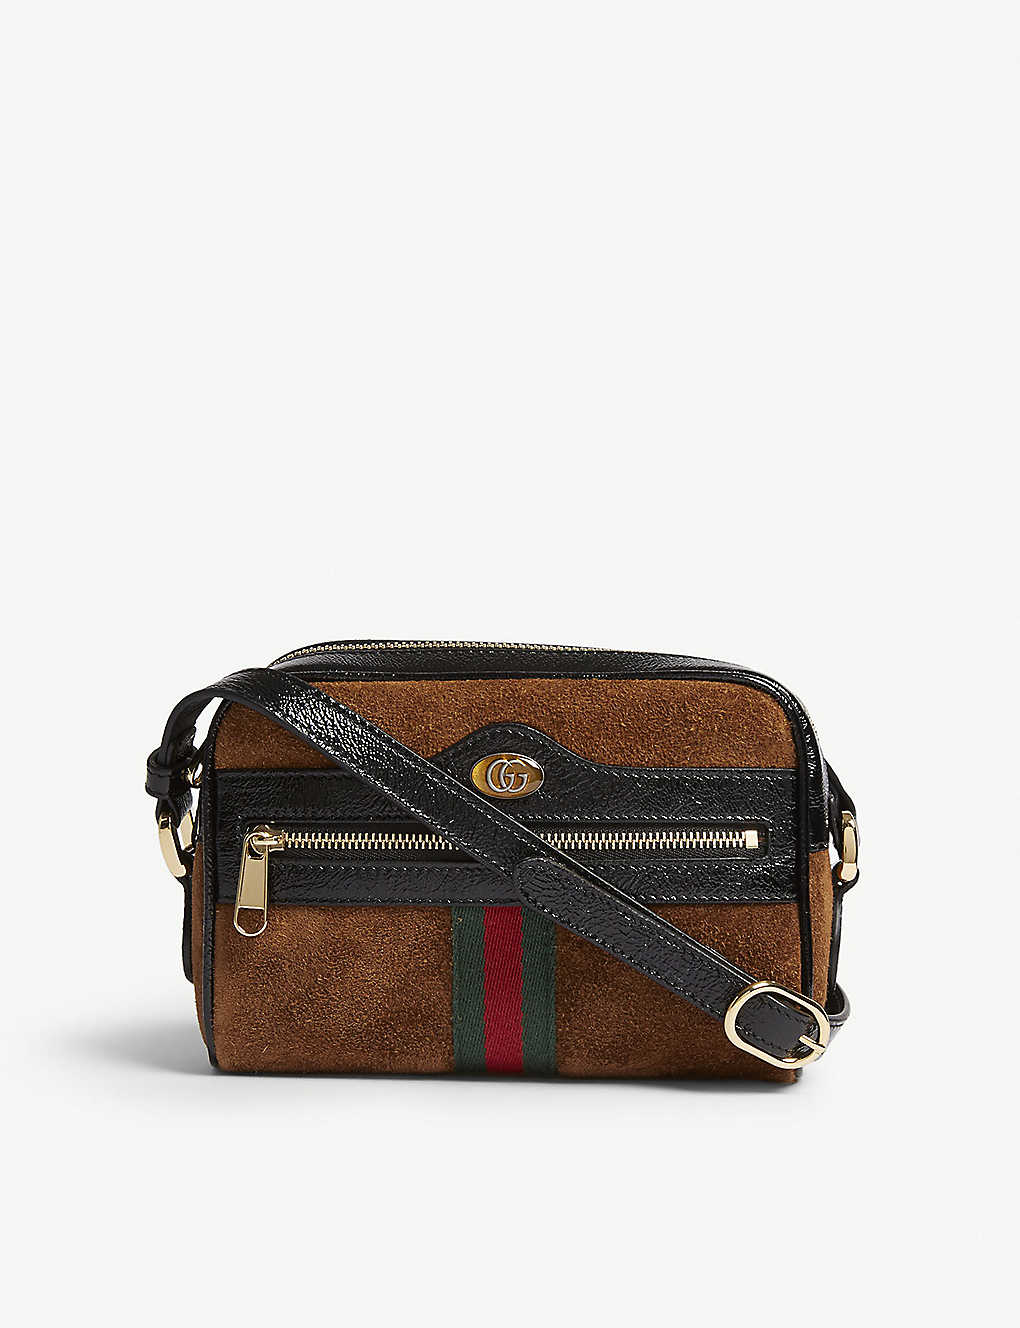 e750d06af86cce GUCCI - Ophidia small suede cross-body bag | Selfridges.com